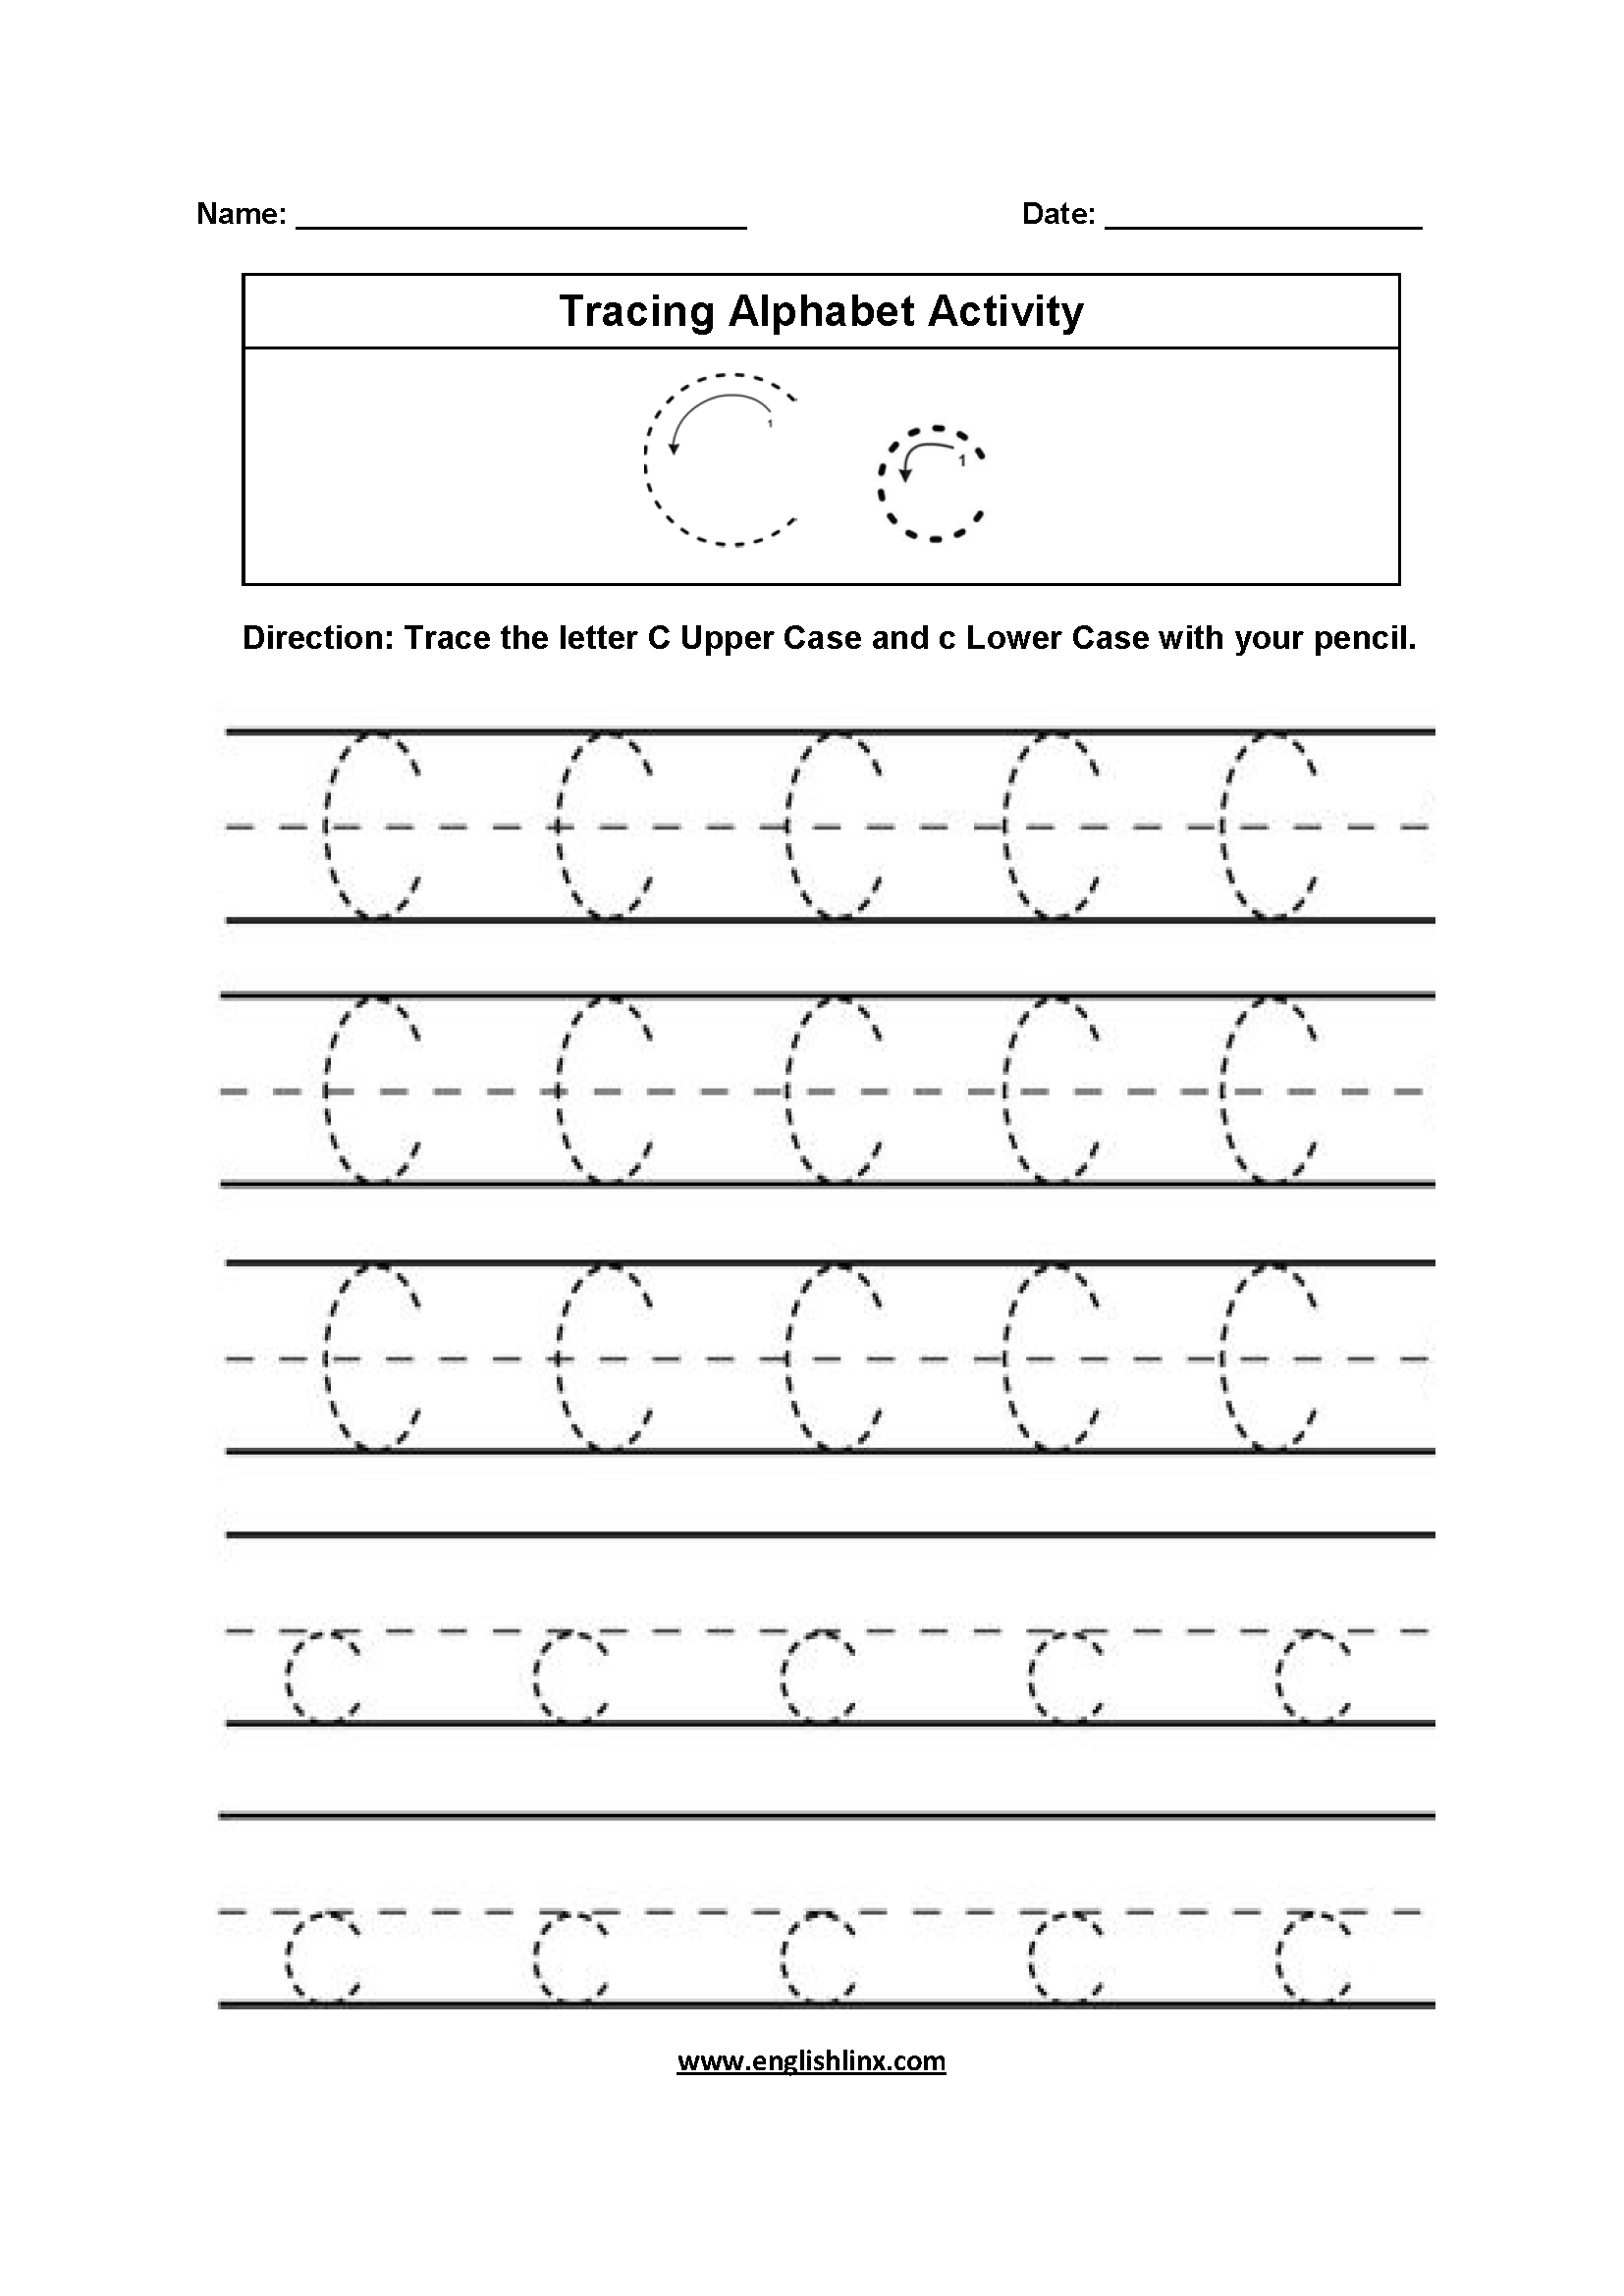 Alphabet Worksheets | Tracing Alphabet Worksheets within C Letter Tracing